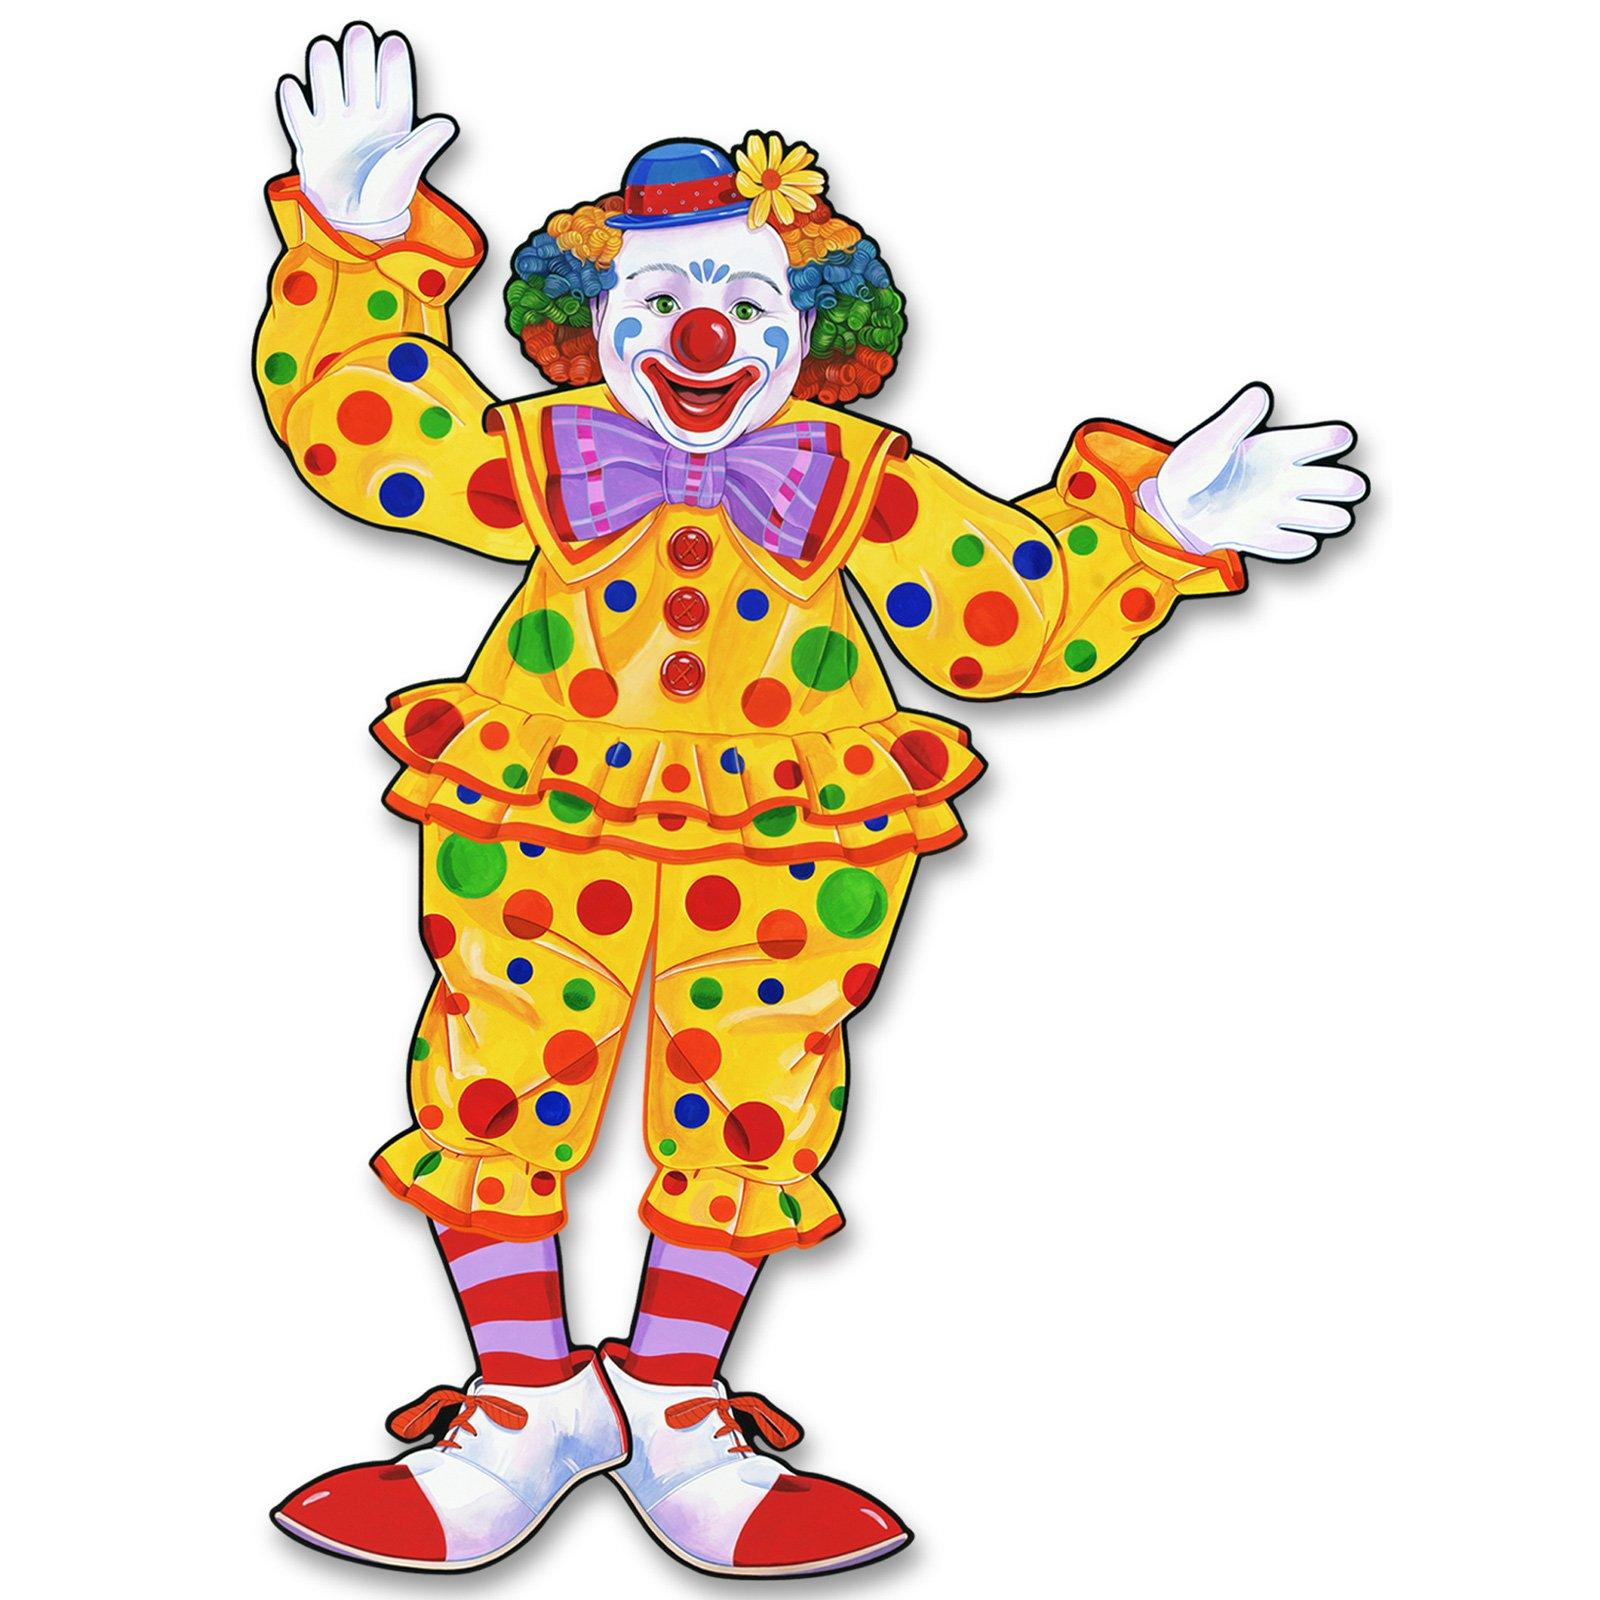 Joker clipart indian Art Clown Art  Free